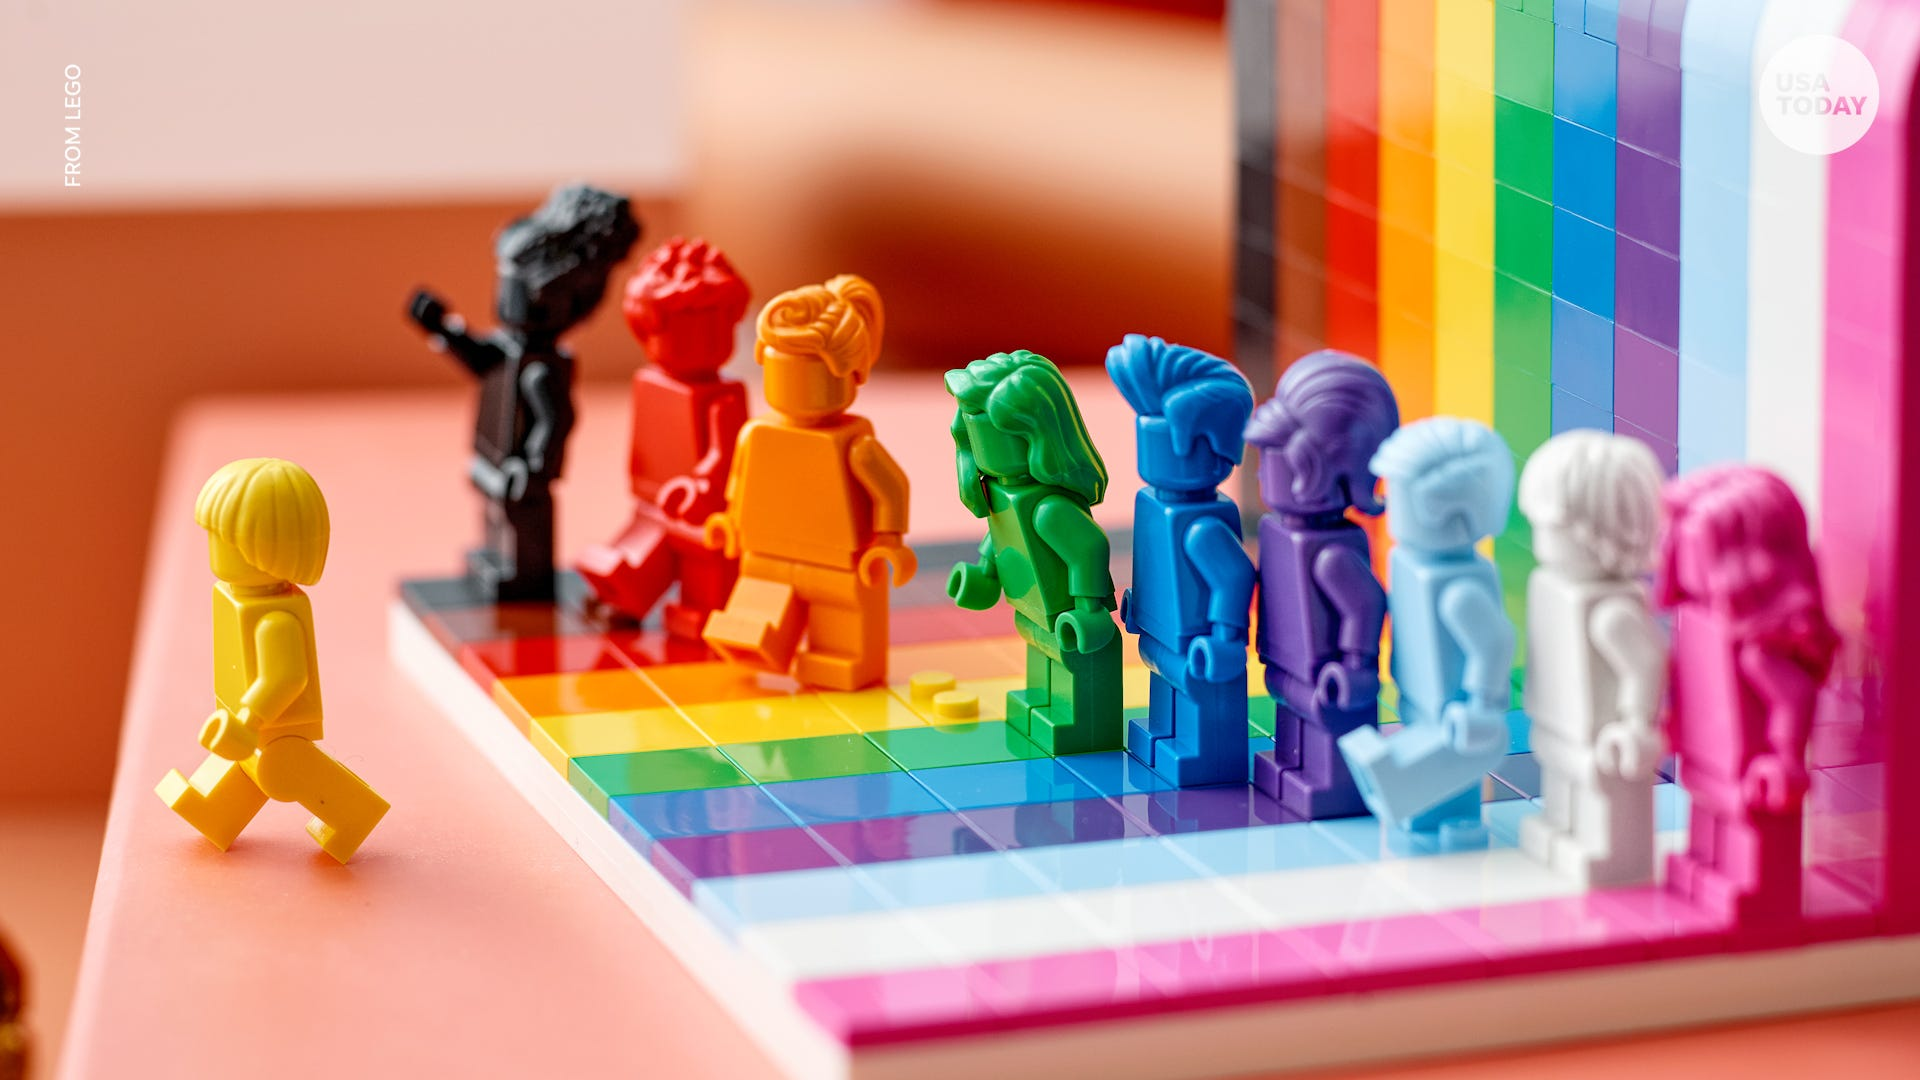 LEGO launching first-ever LGBTQ set ahead of Pride Month